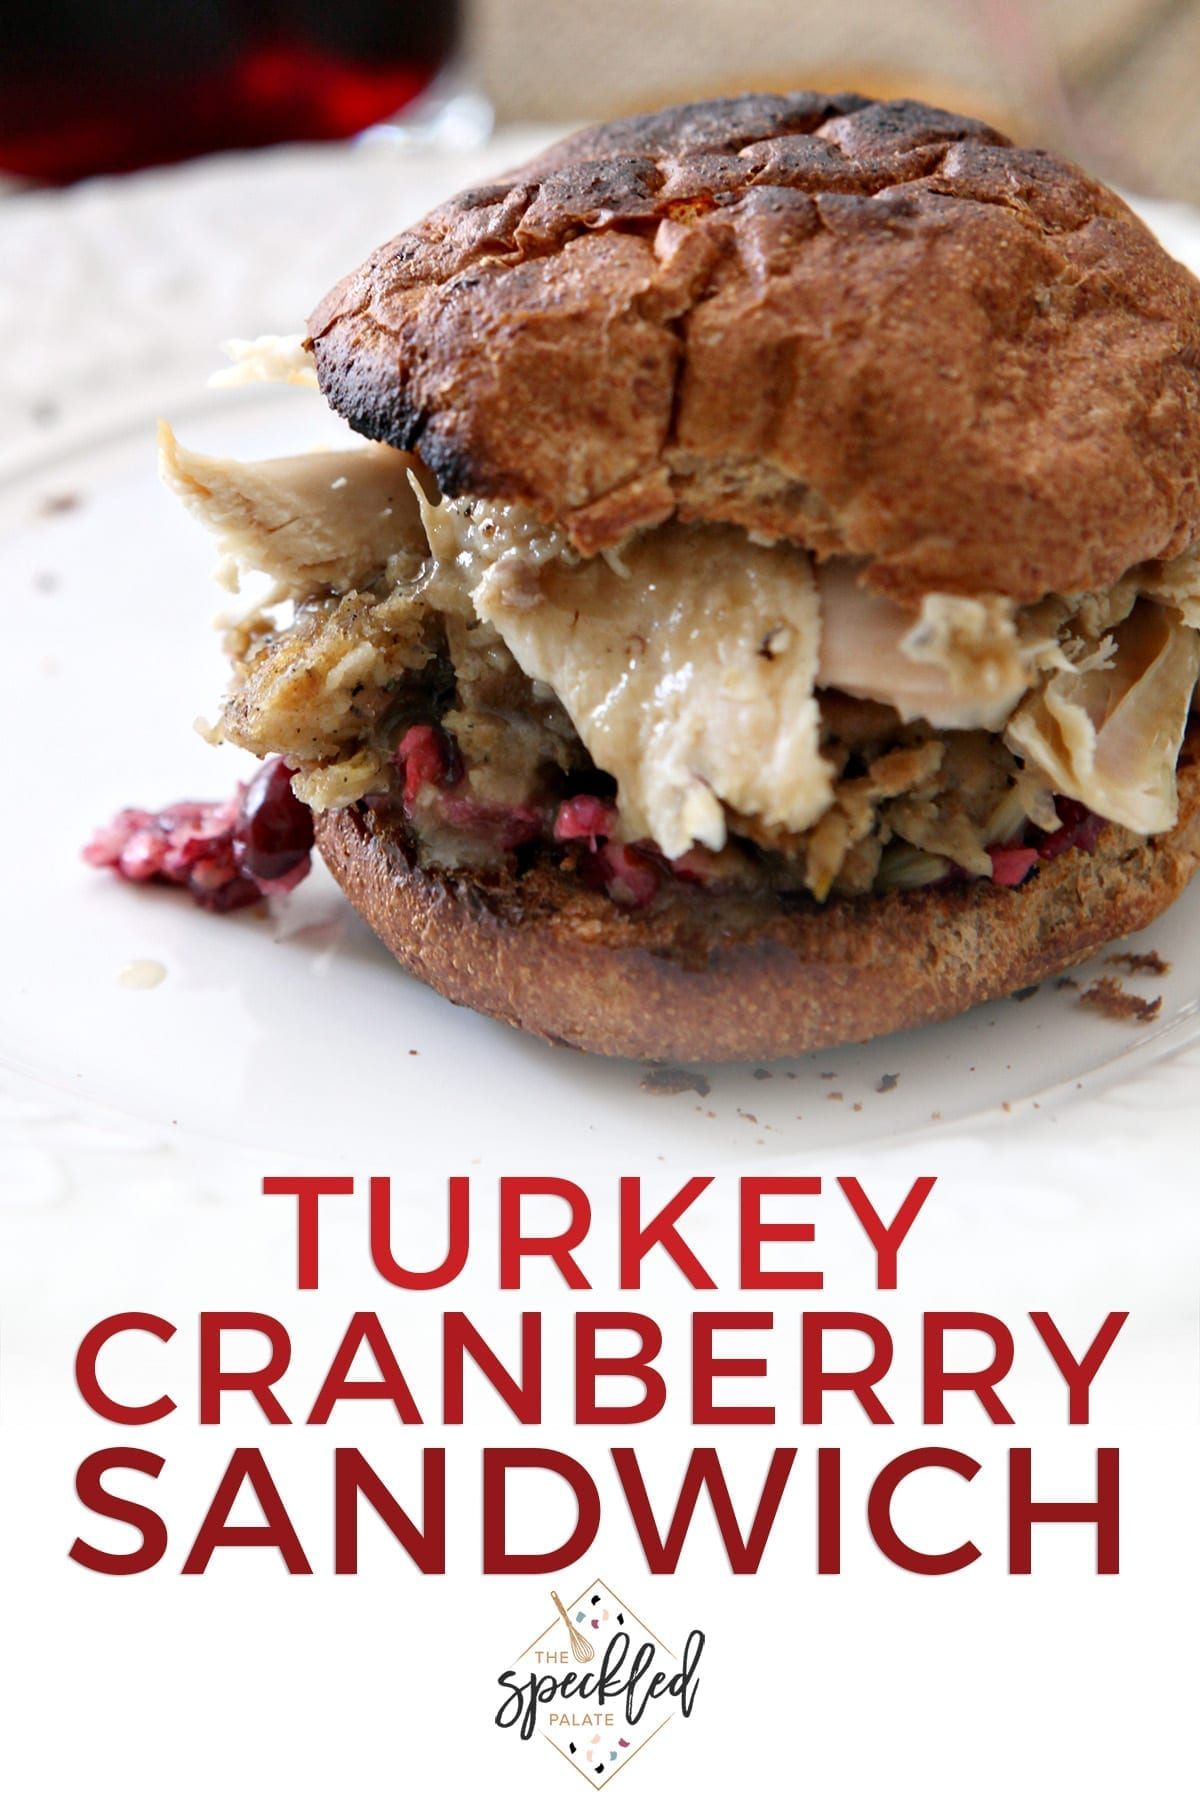 A toasted sandwich on a white plate with the text 'turkey cranberry sandwich'